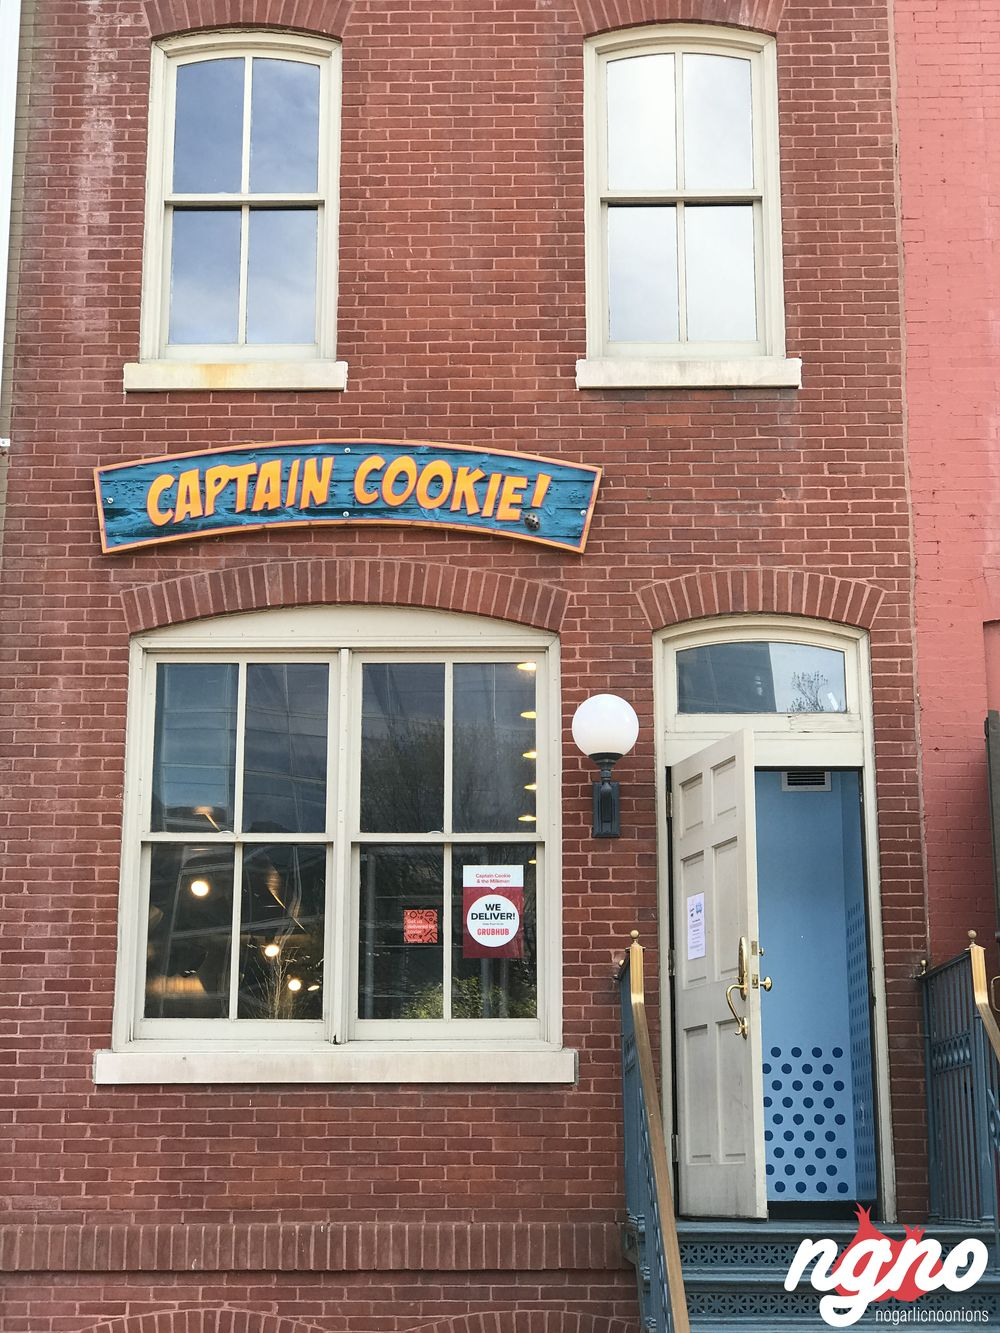 captain-cookie-washington12017-04-11-01-07-15